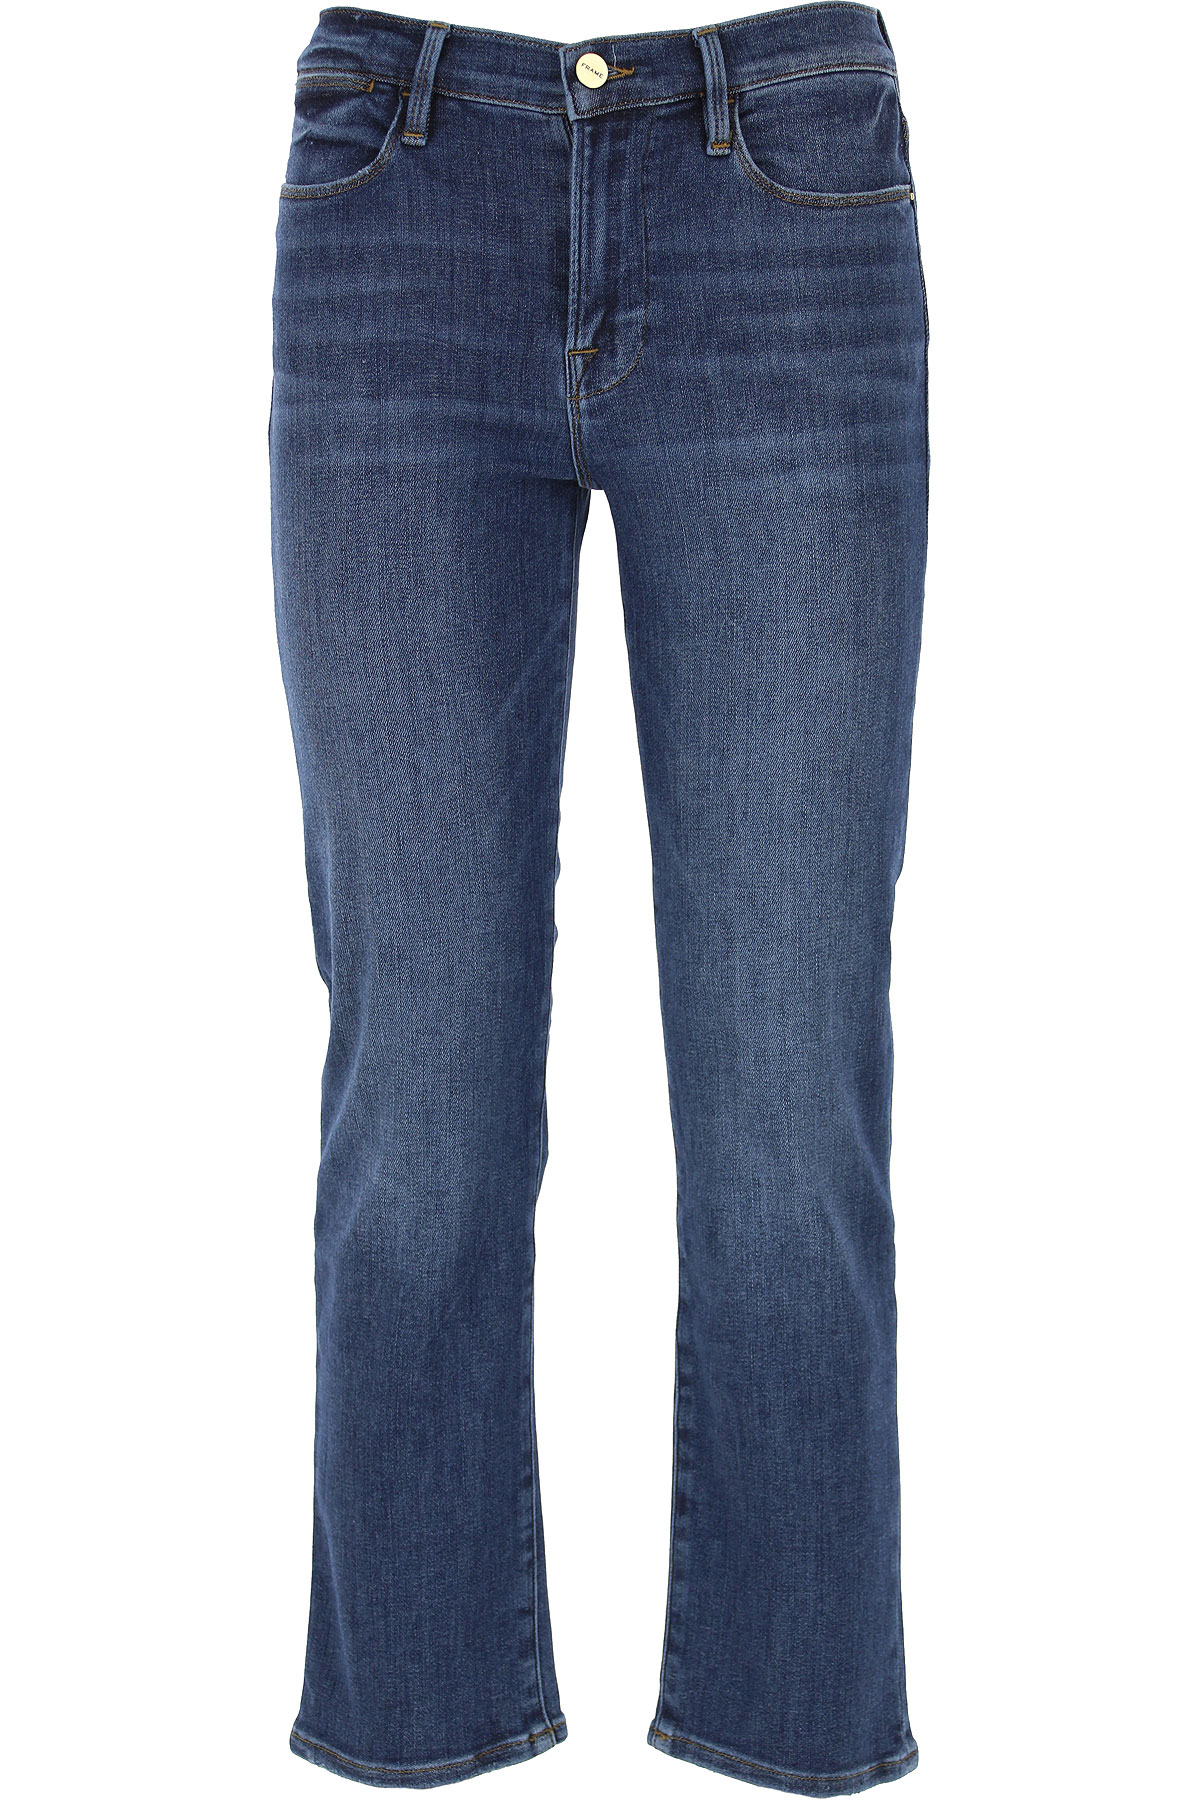 Frame Jeans On Sale, Denim, Cotton, 2019, 24